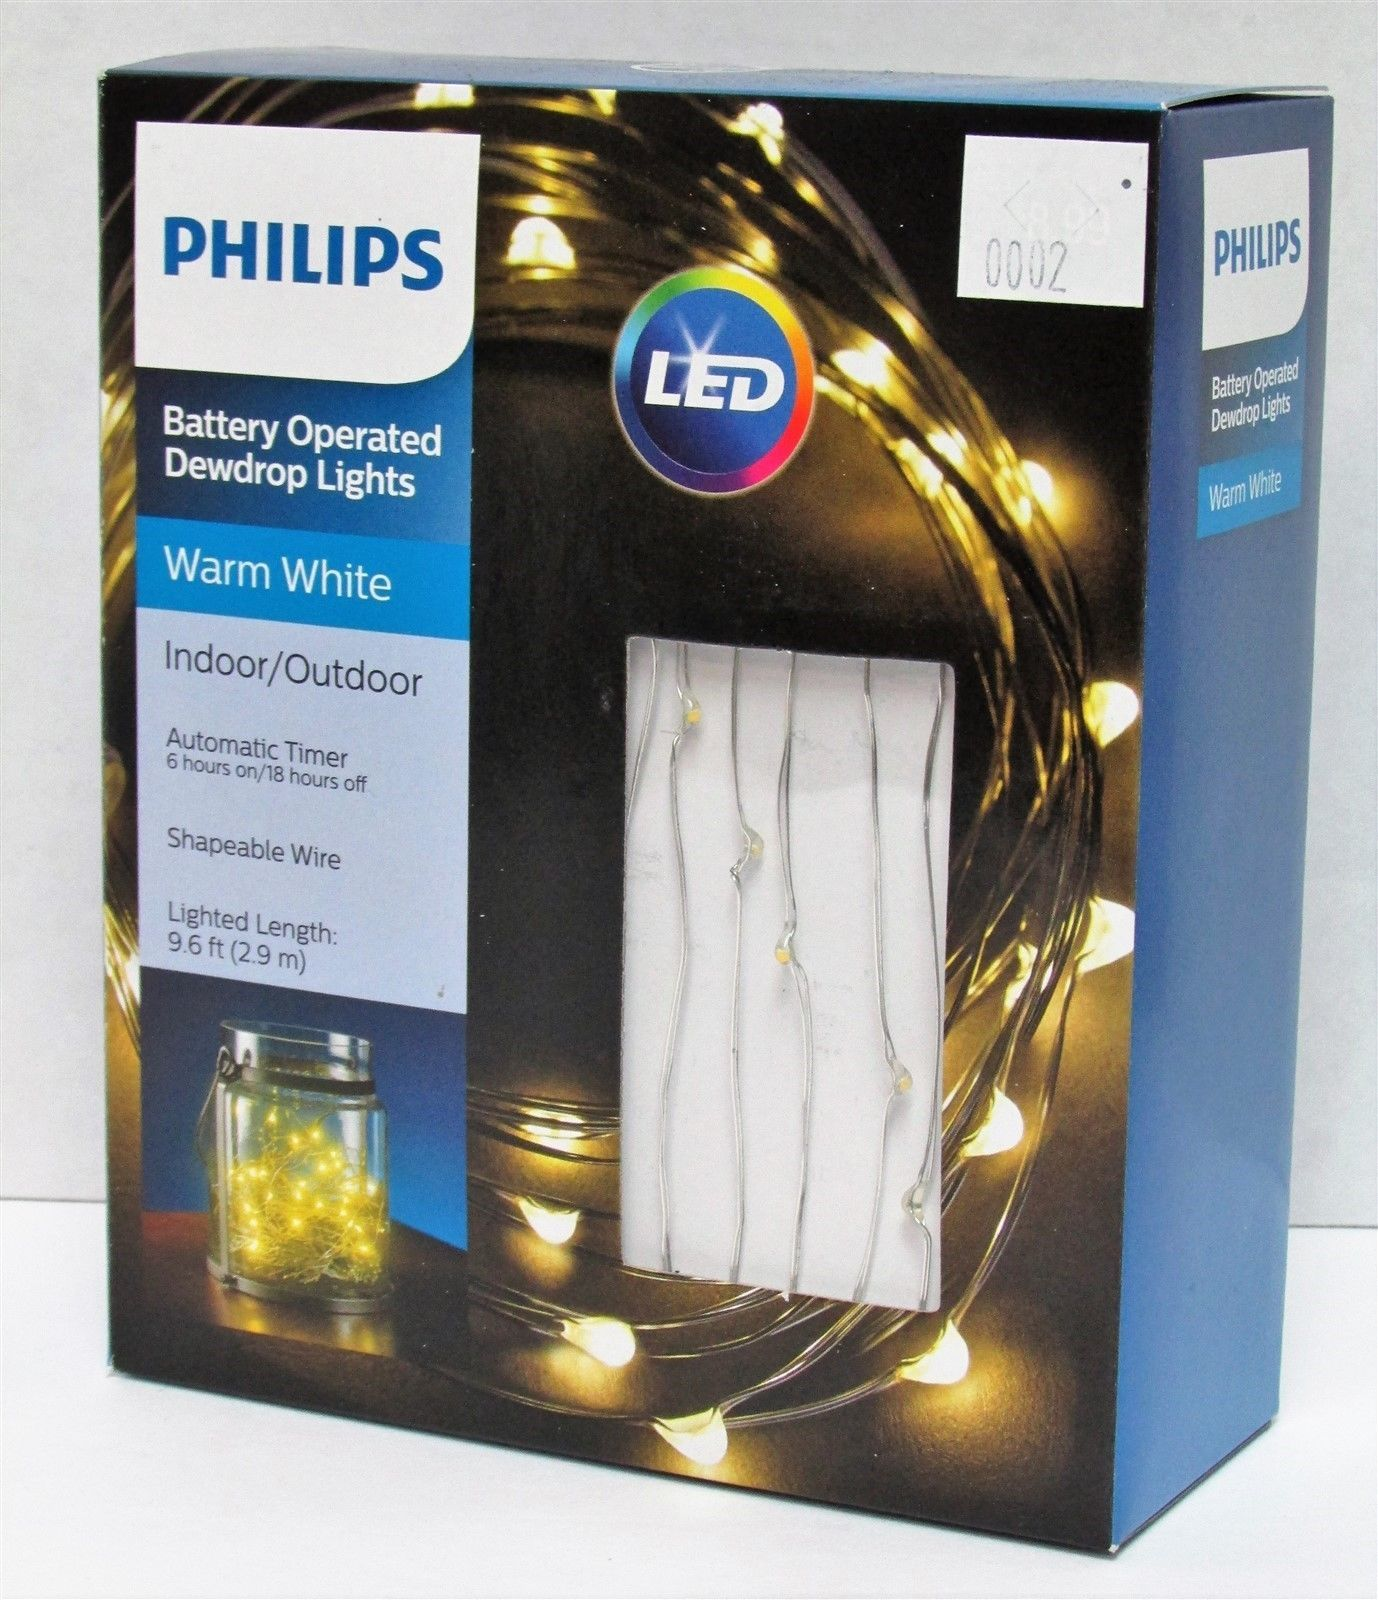 Lot of 4 LED Battery Operated Dewdrop Lights w// Timer Philips 9.6ft Warm White